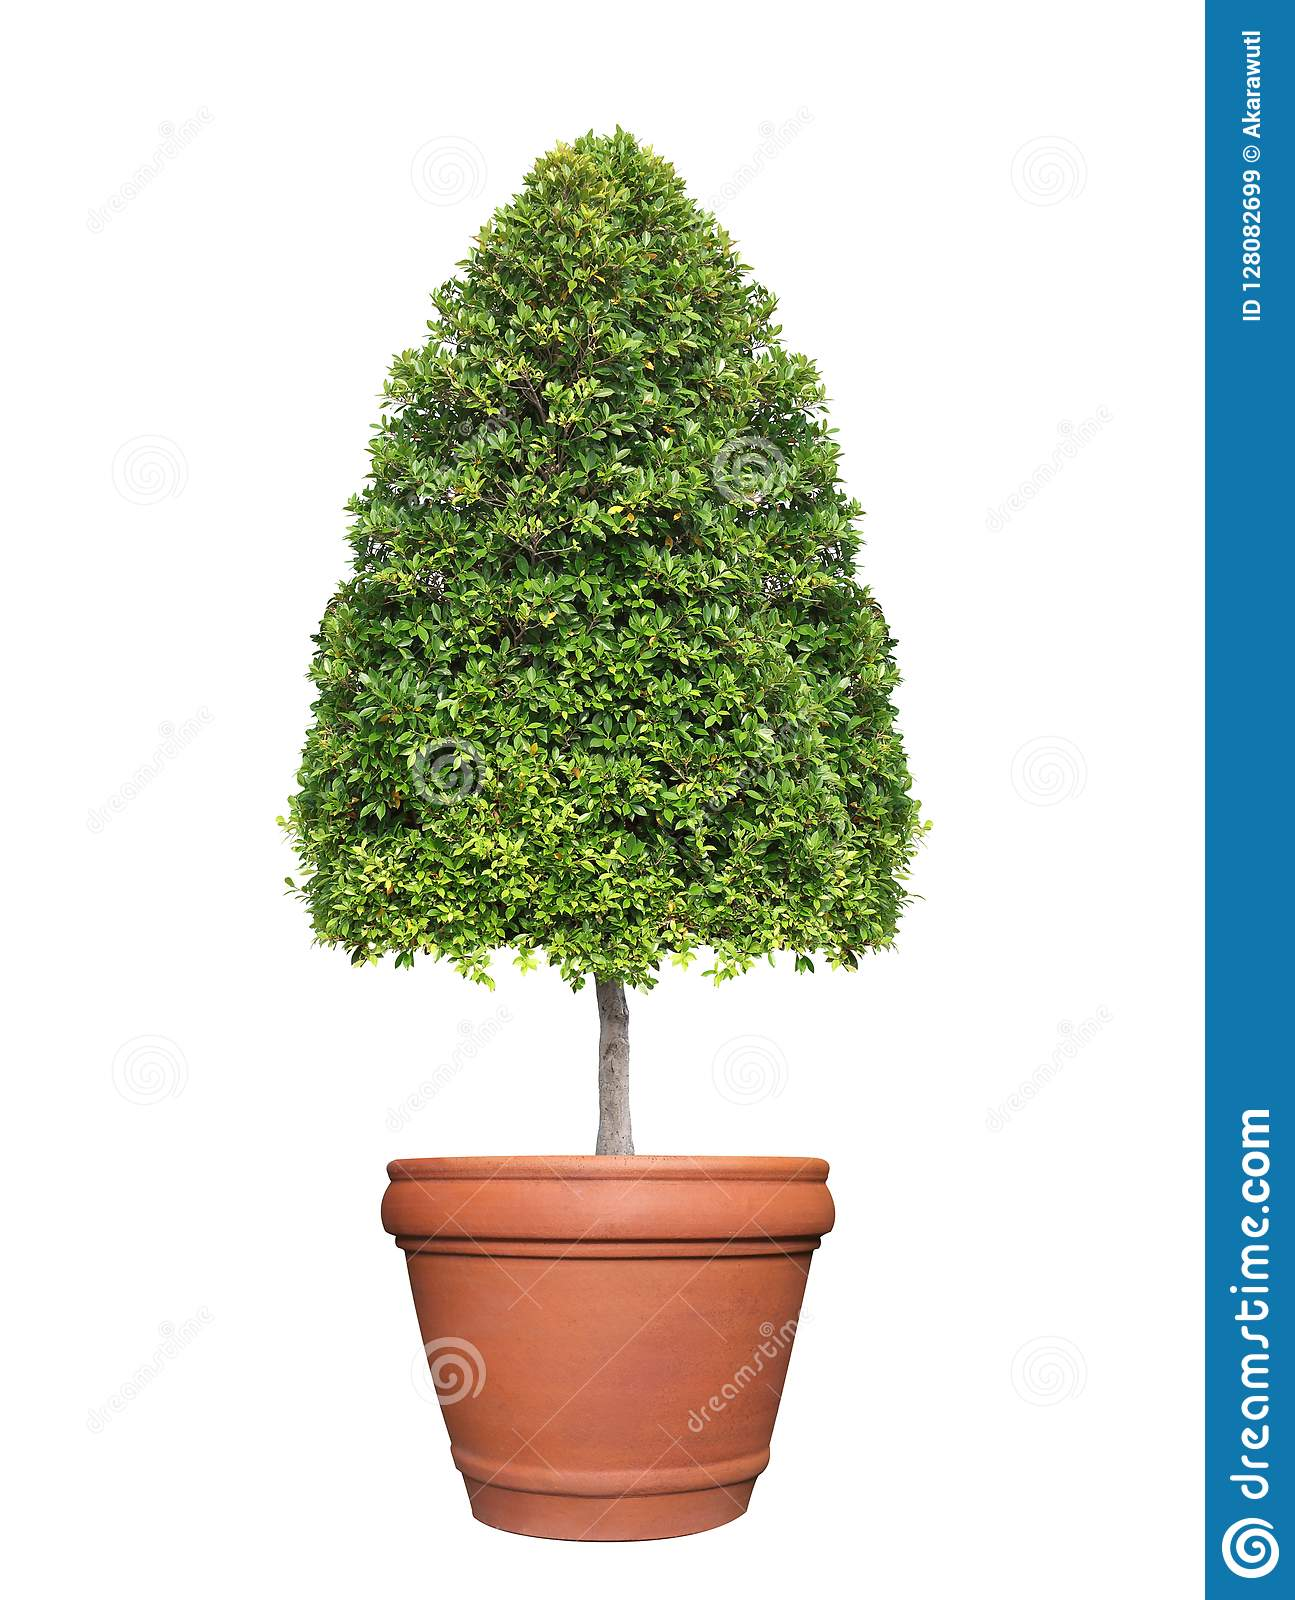 Symmetric Cone Shape Trim Topiary Tree On Clay Pot Isolated On White Background For Outdoor And Garden Design Stock Image Image Of Large Background 128082699